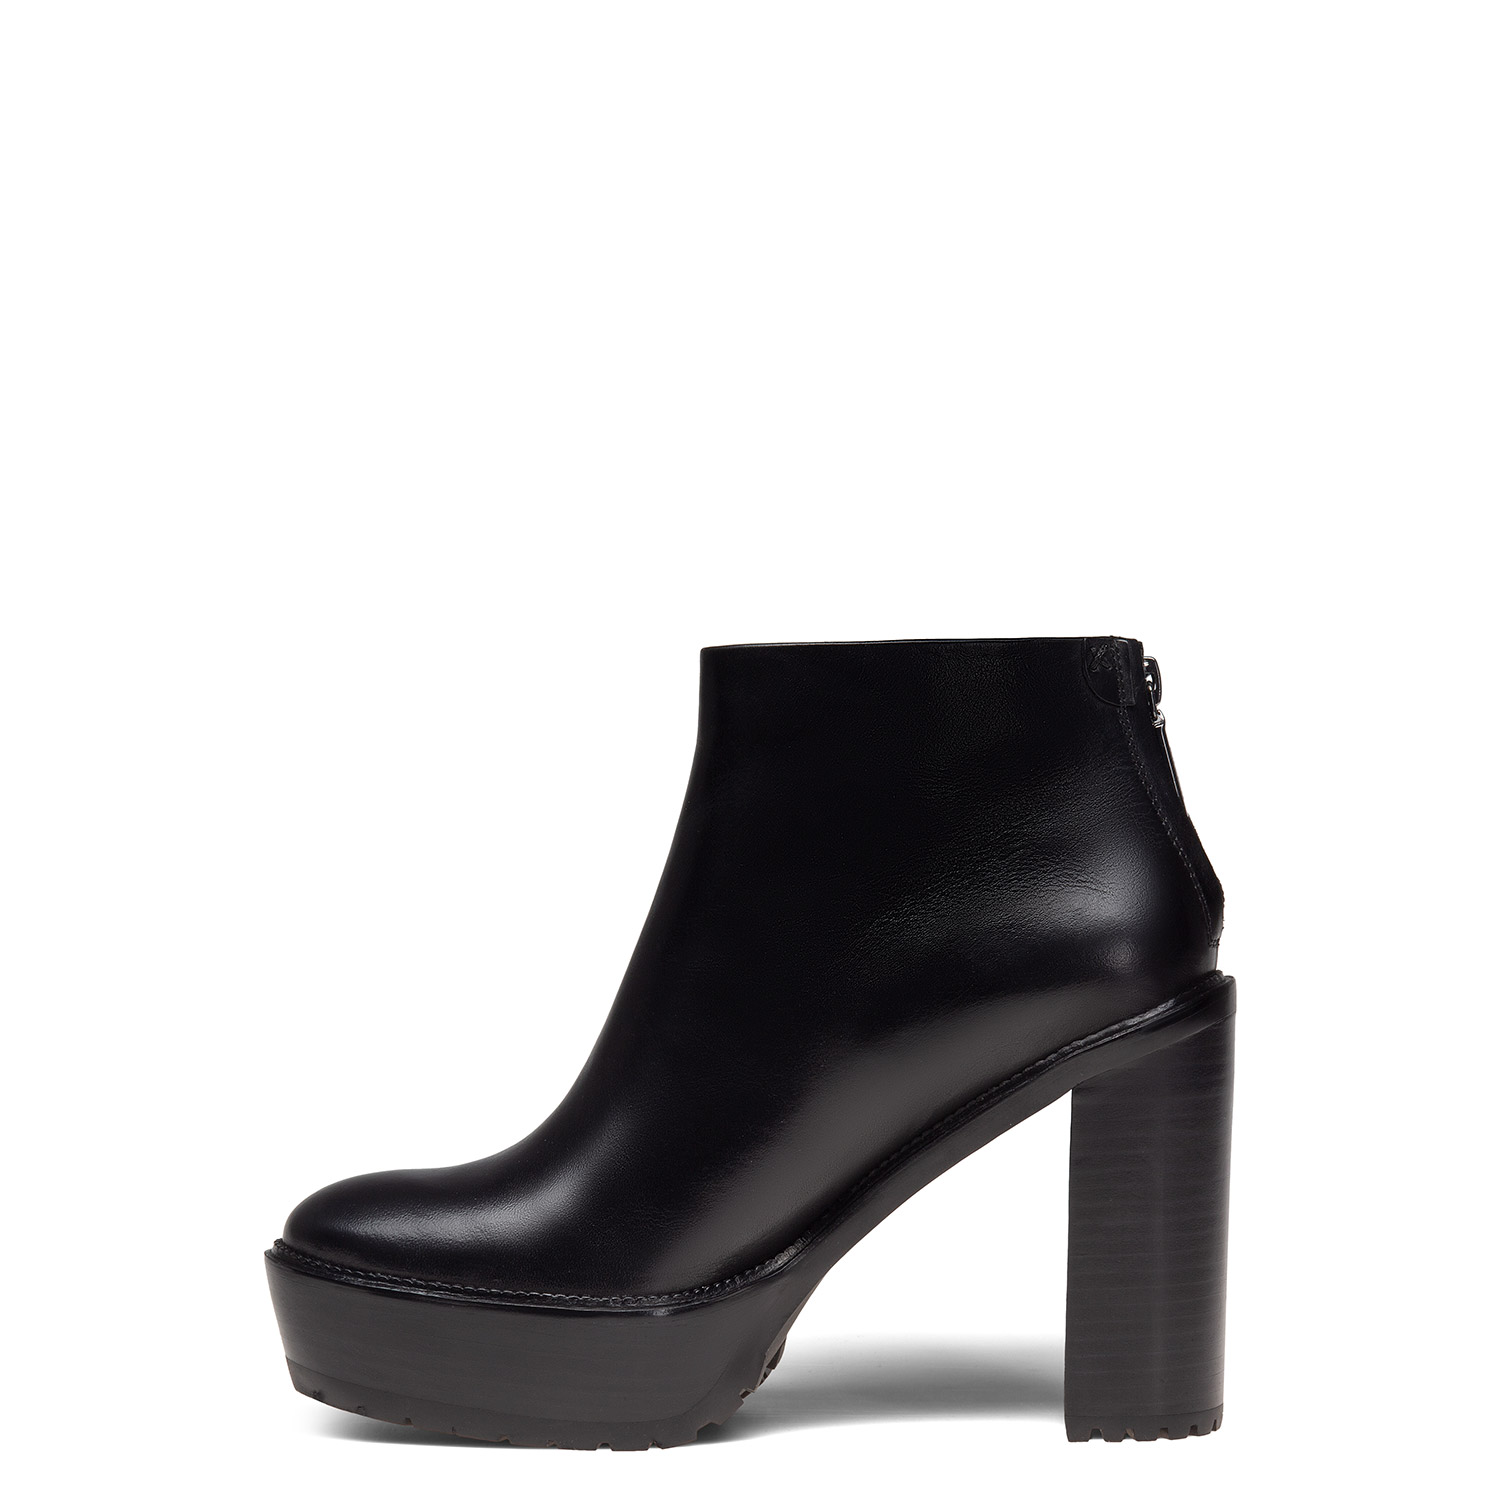 Women's ankle boots PAZOLINI FG-MAP5-1